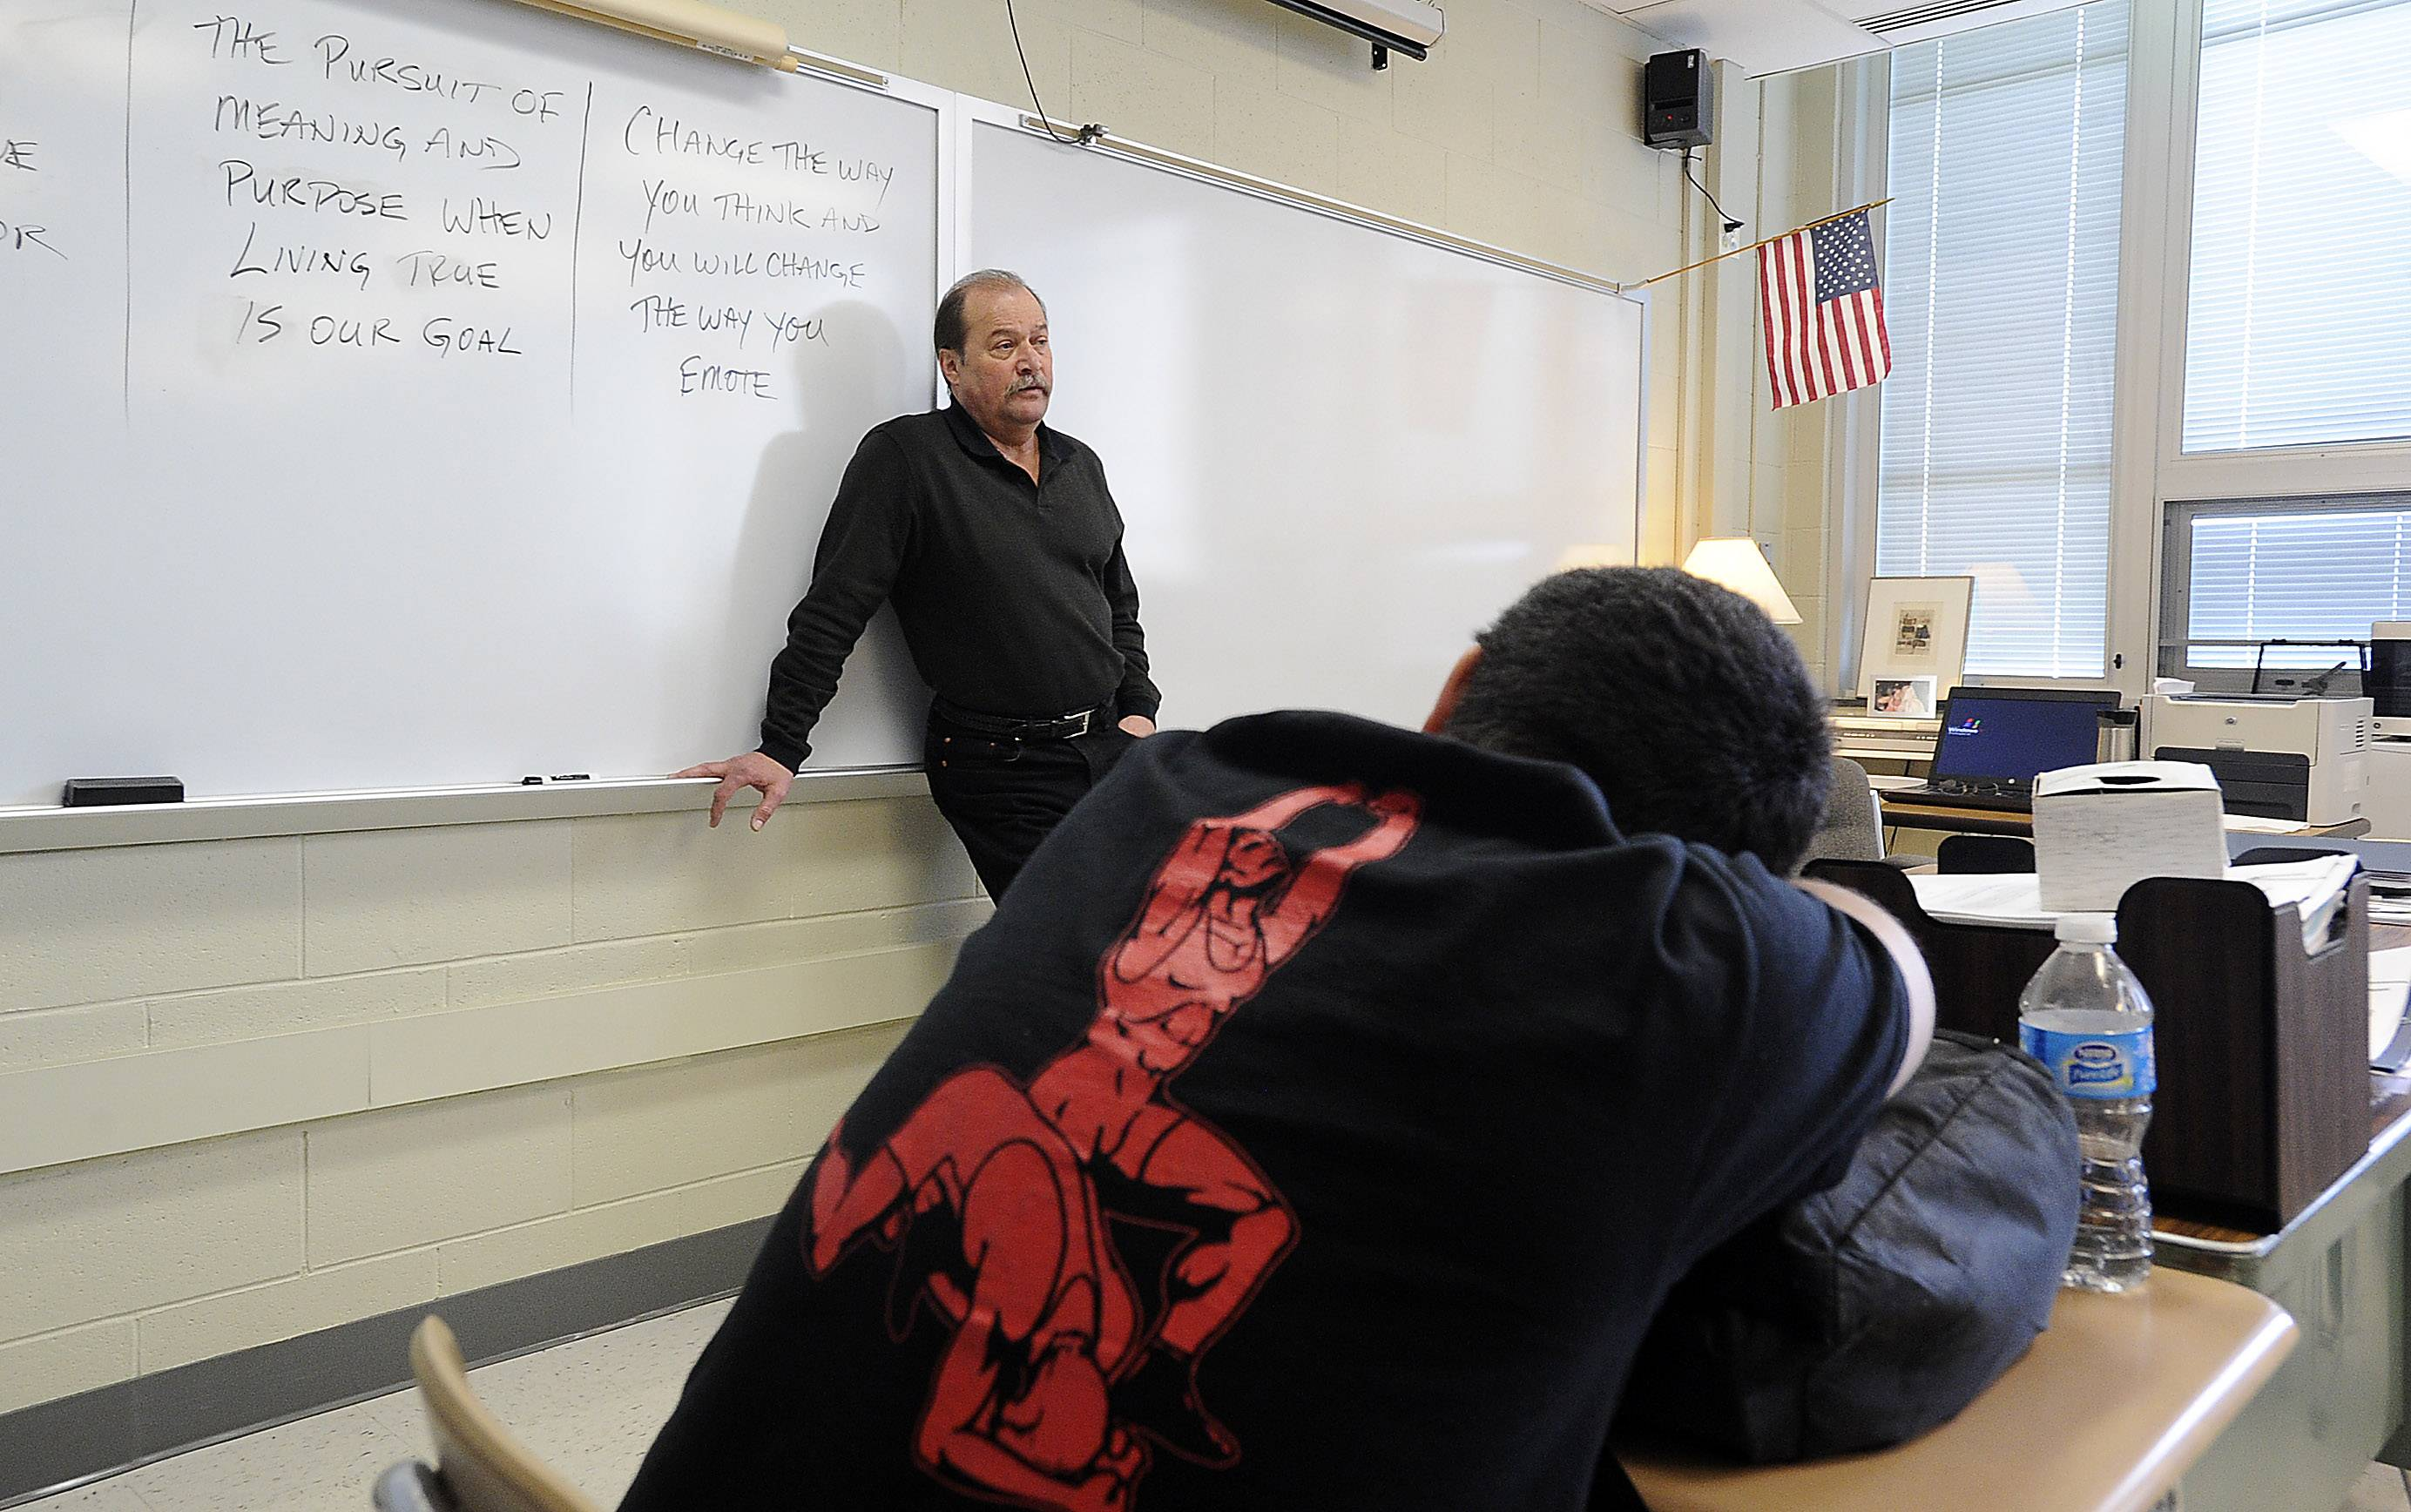 Bill Palmer teaches students the importance of finding meaning and purpose in their lives during a resource class at Barrington High School.